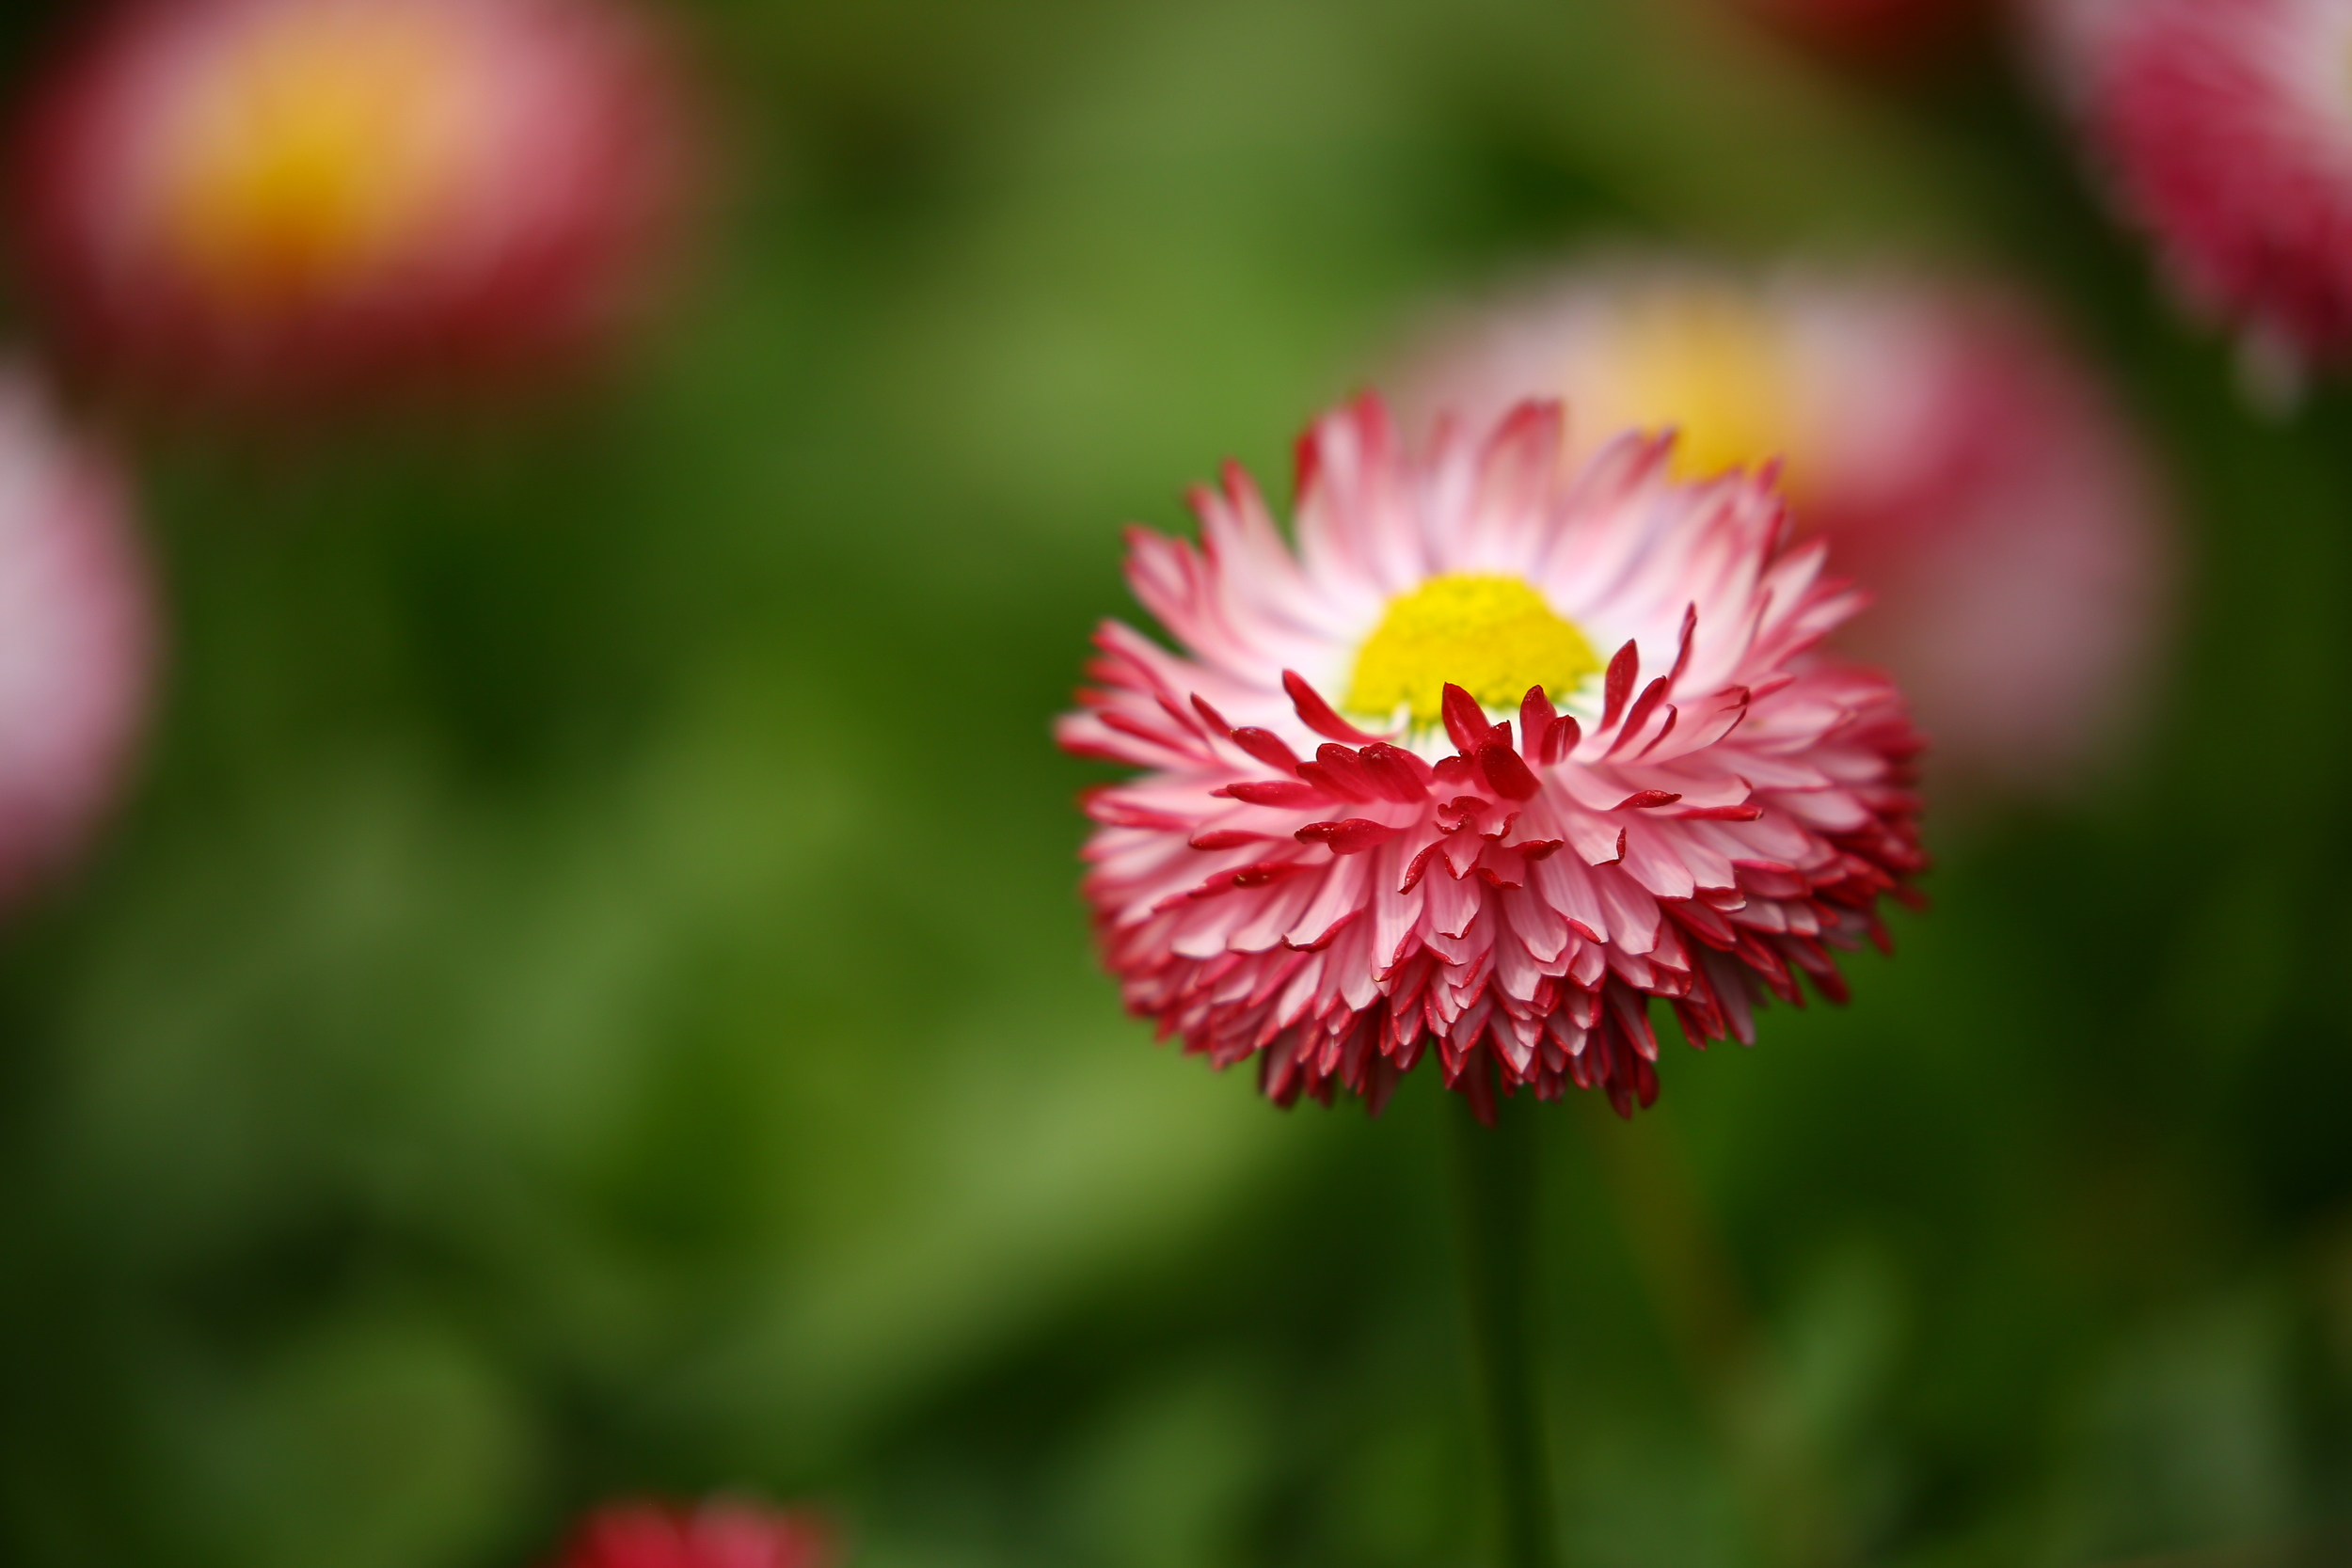 flower in focus